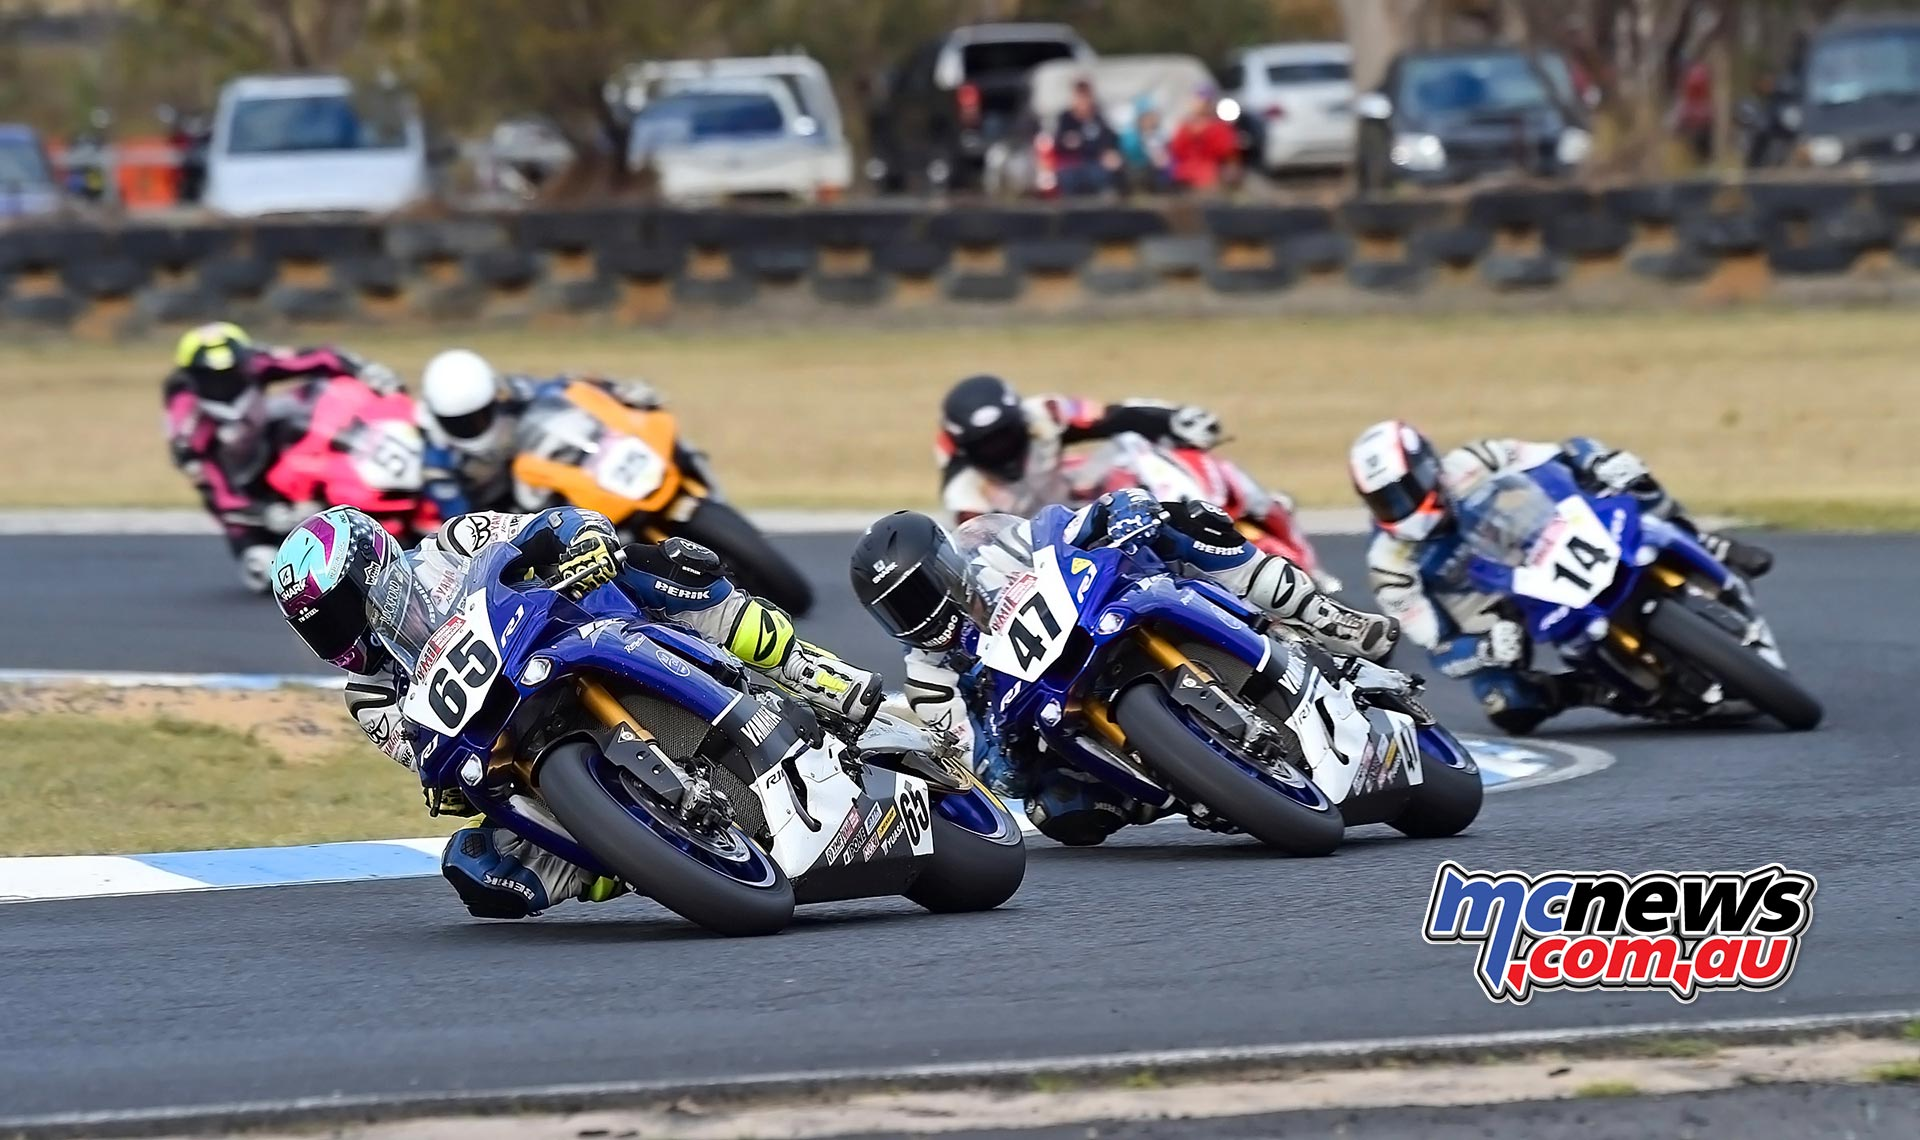 ASBK 2016 -Morgan Park - Superbike Race Two - Image by Keith Muir - Cru Halliday leads Glenn Allerton